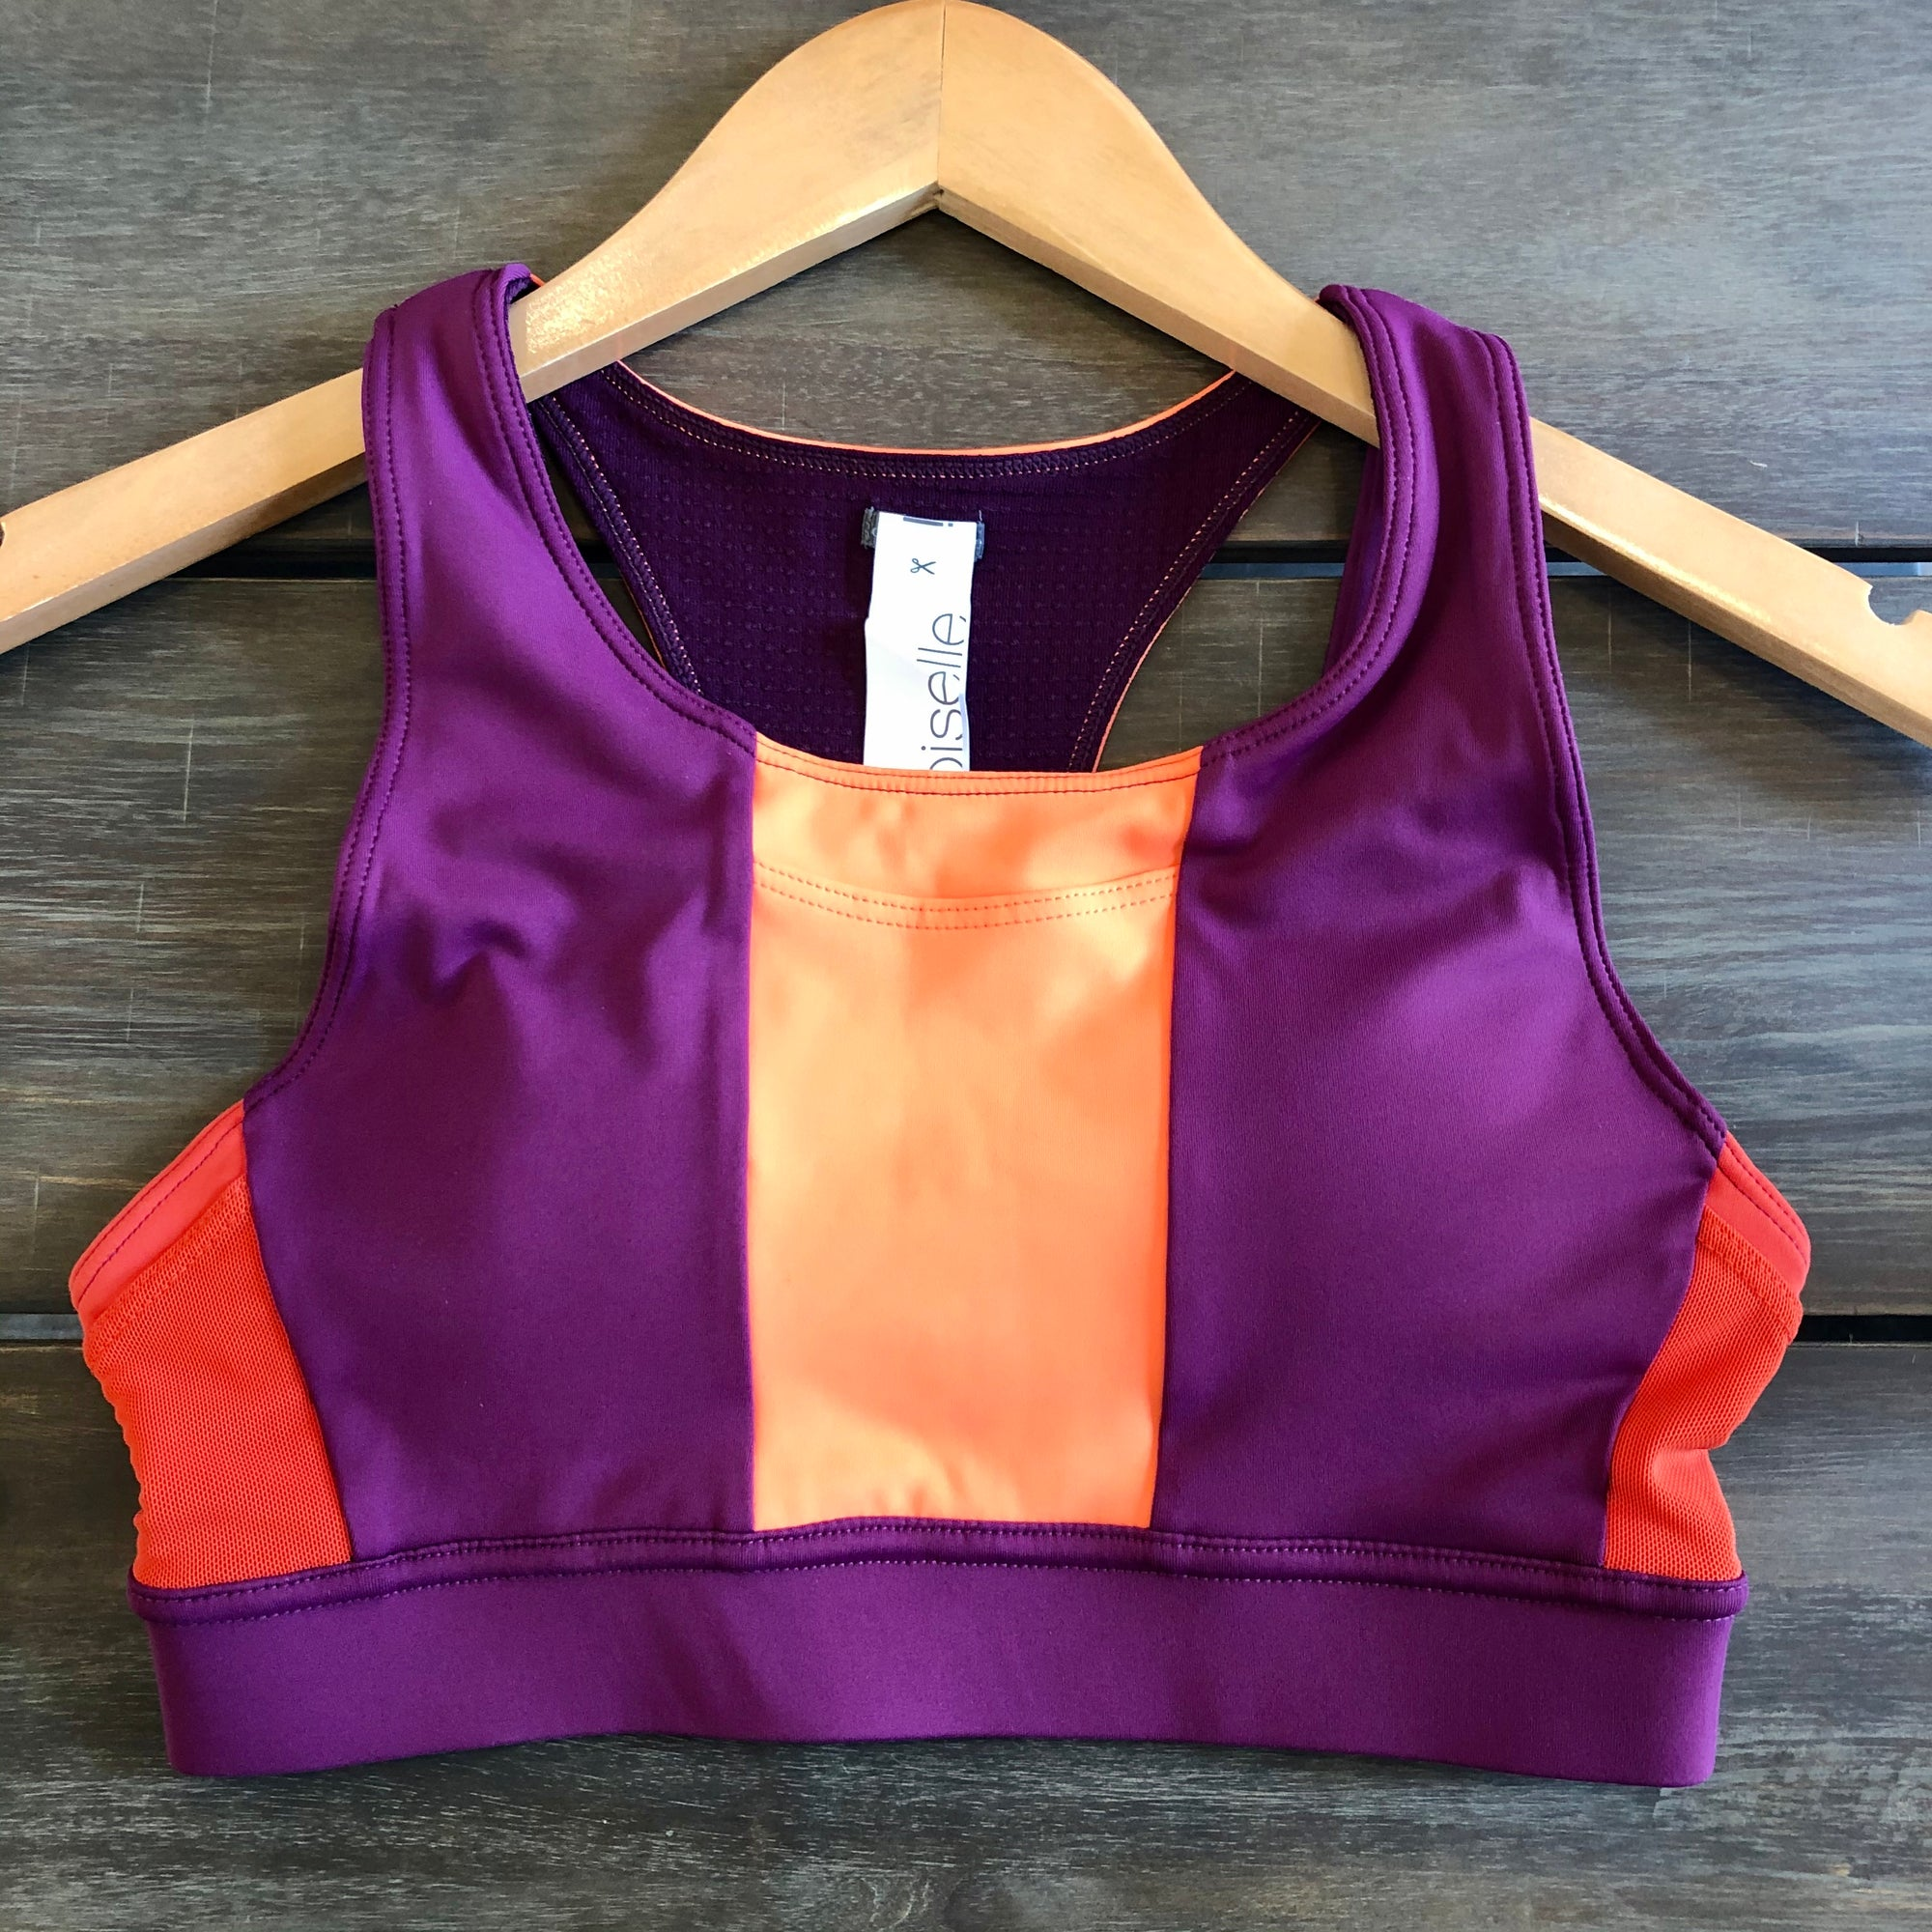 Oiselle Pockito Bra (Queen)